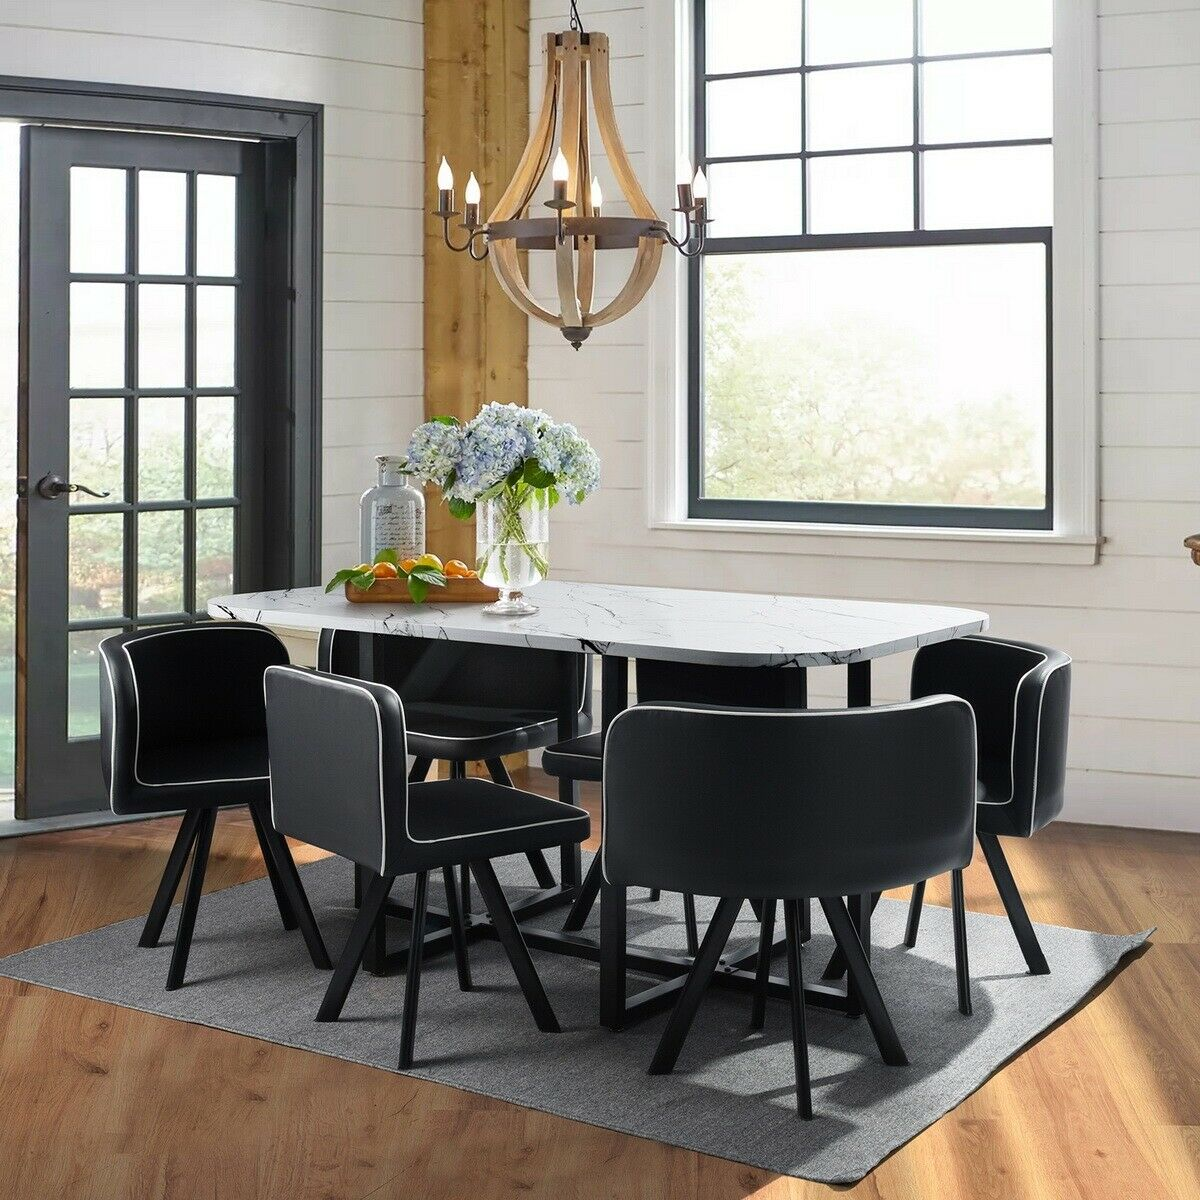 Dining Room Table Set For 6 Farmhouse Wooden Kitchen Tables And Chairs 7 Piece For Sale Online Ebay